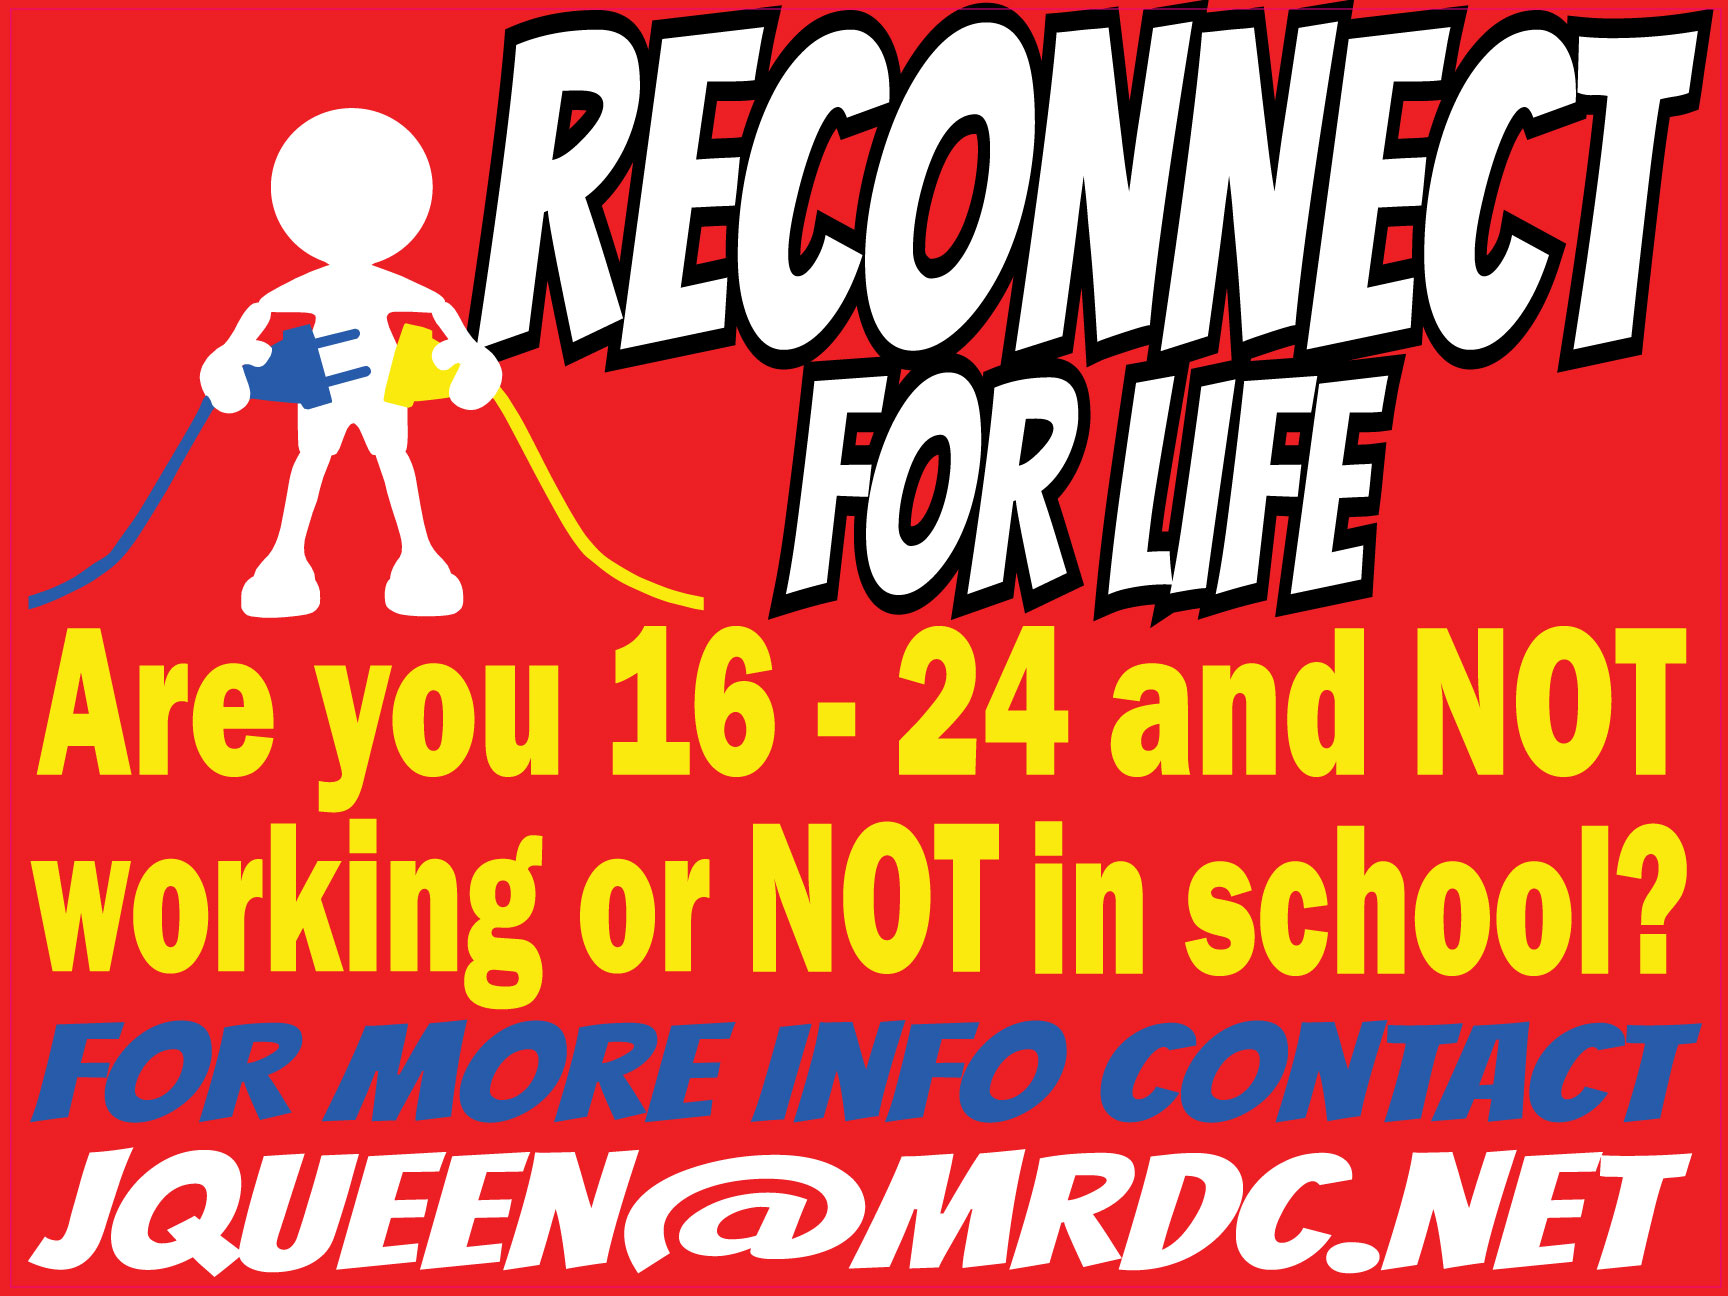 Reconnect for Life!